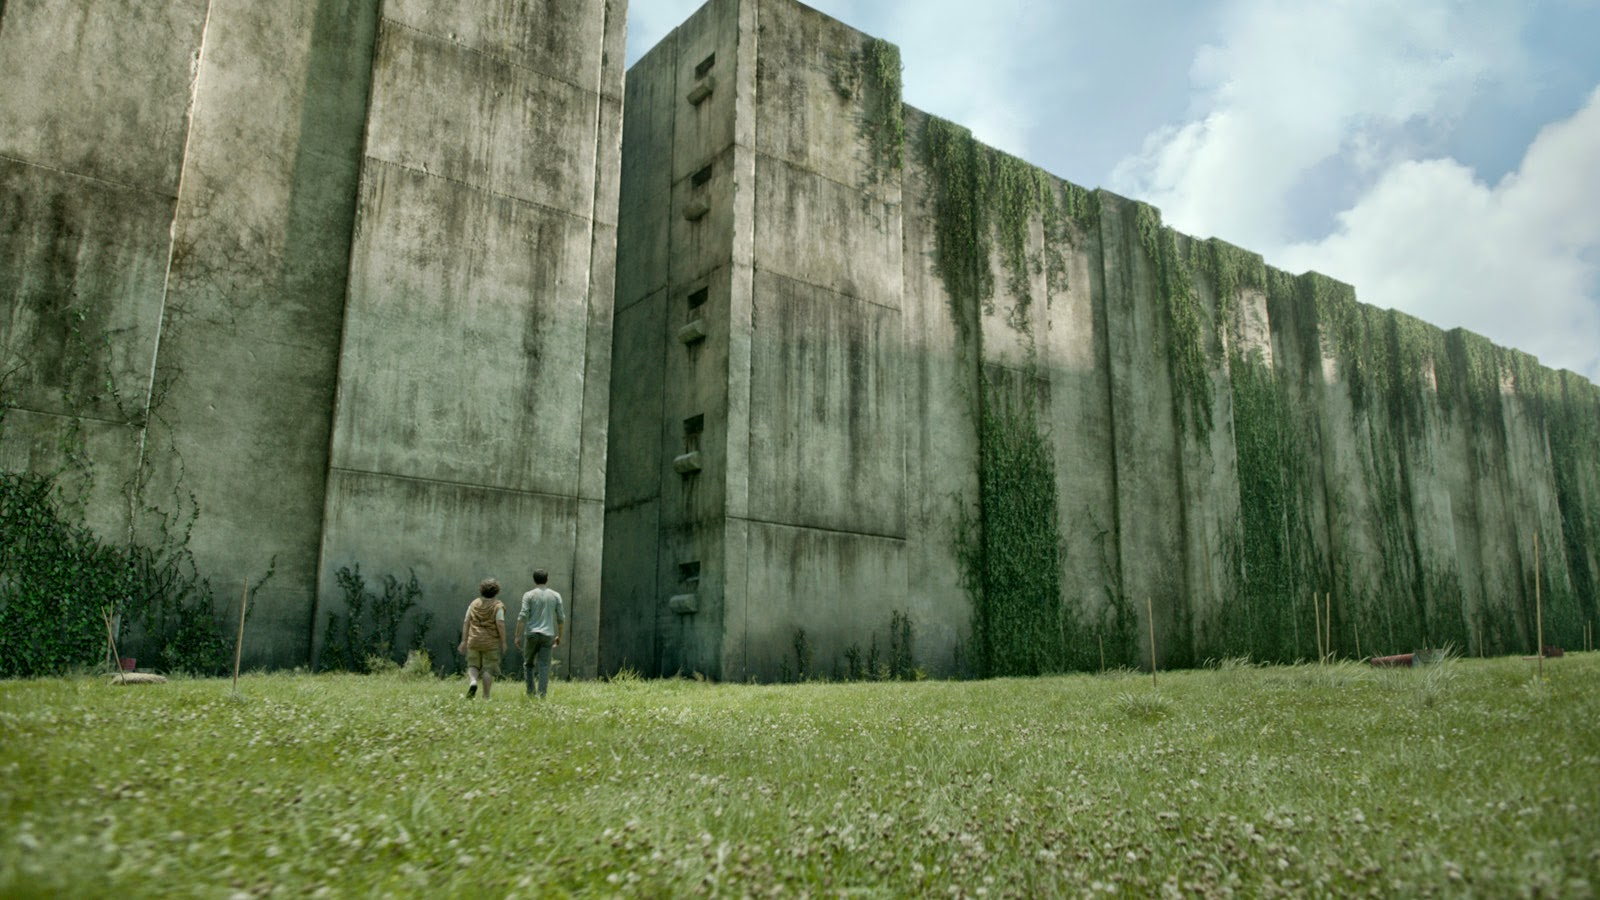 Walls of the maze